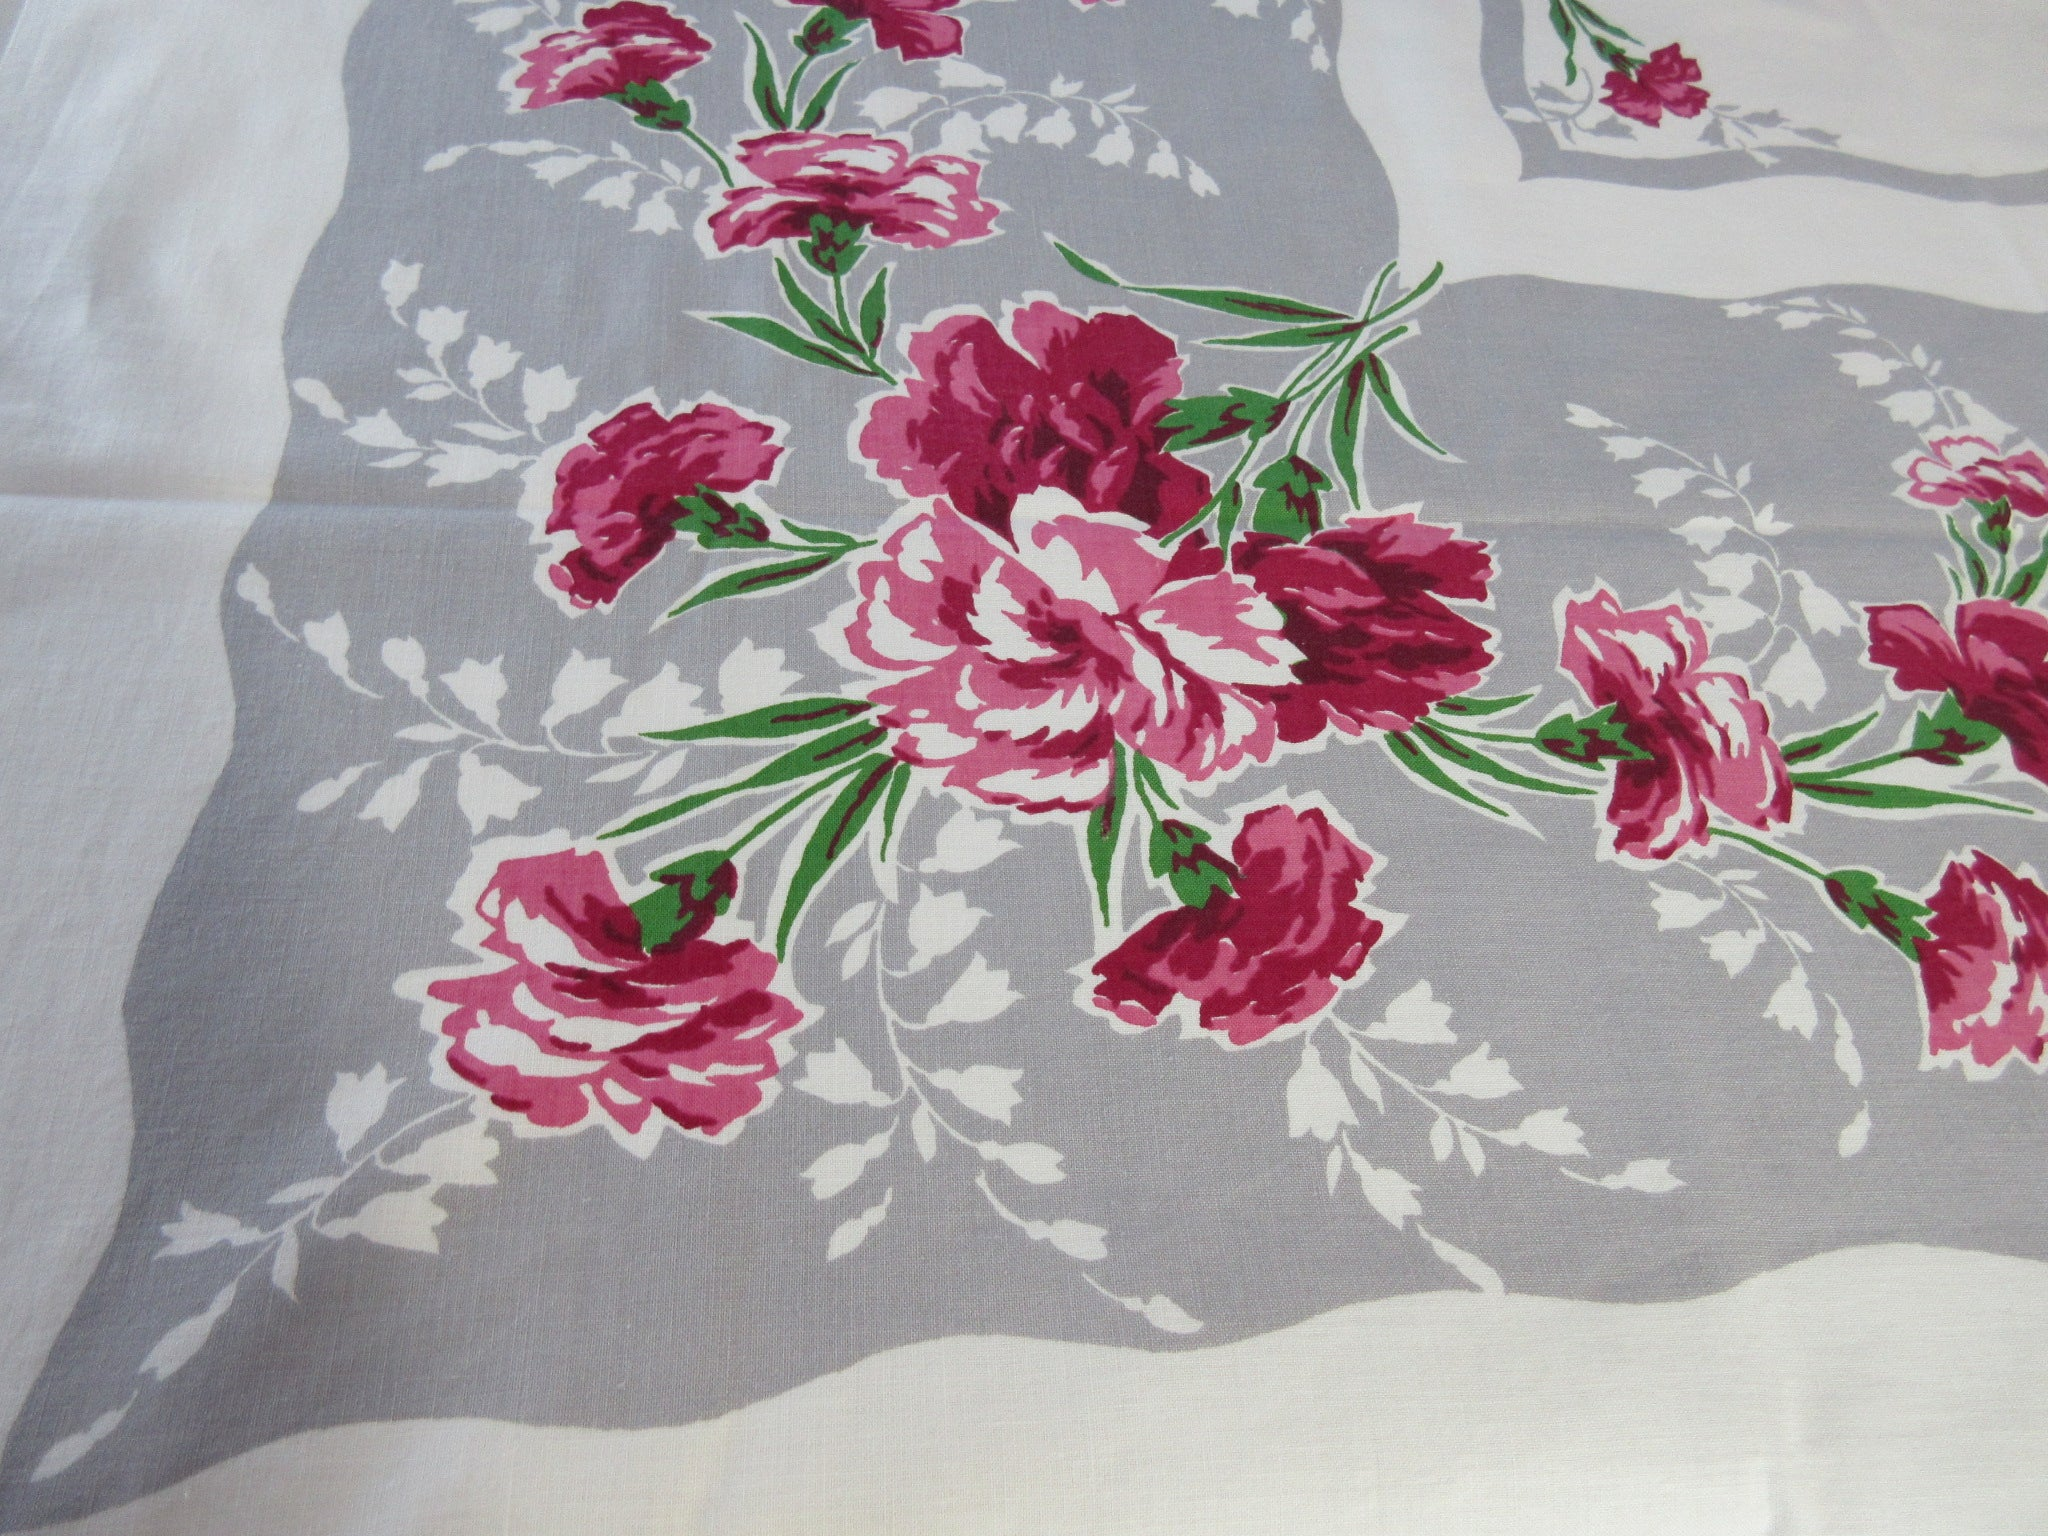 Bright Pink Carnations on Gray Floral Vintage Printed Tablecloth (51 X 47)